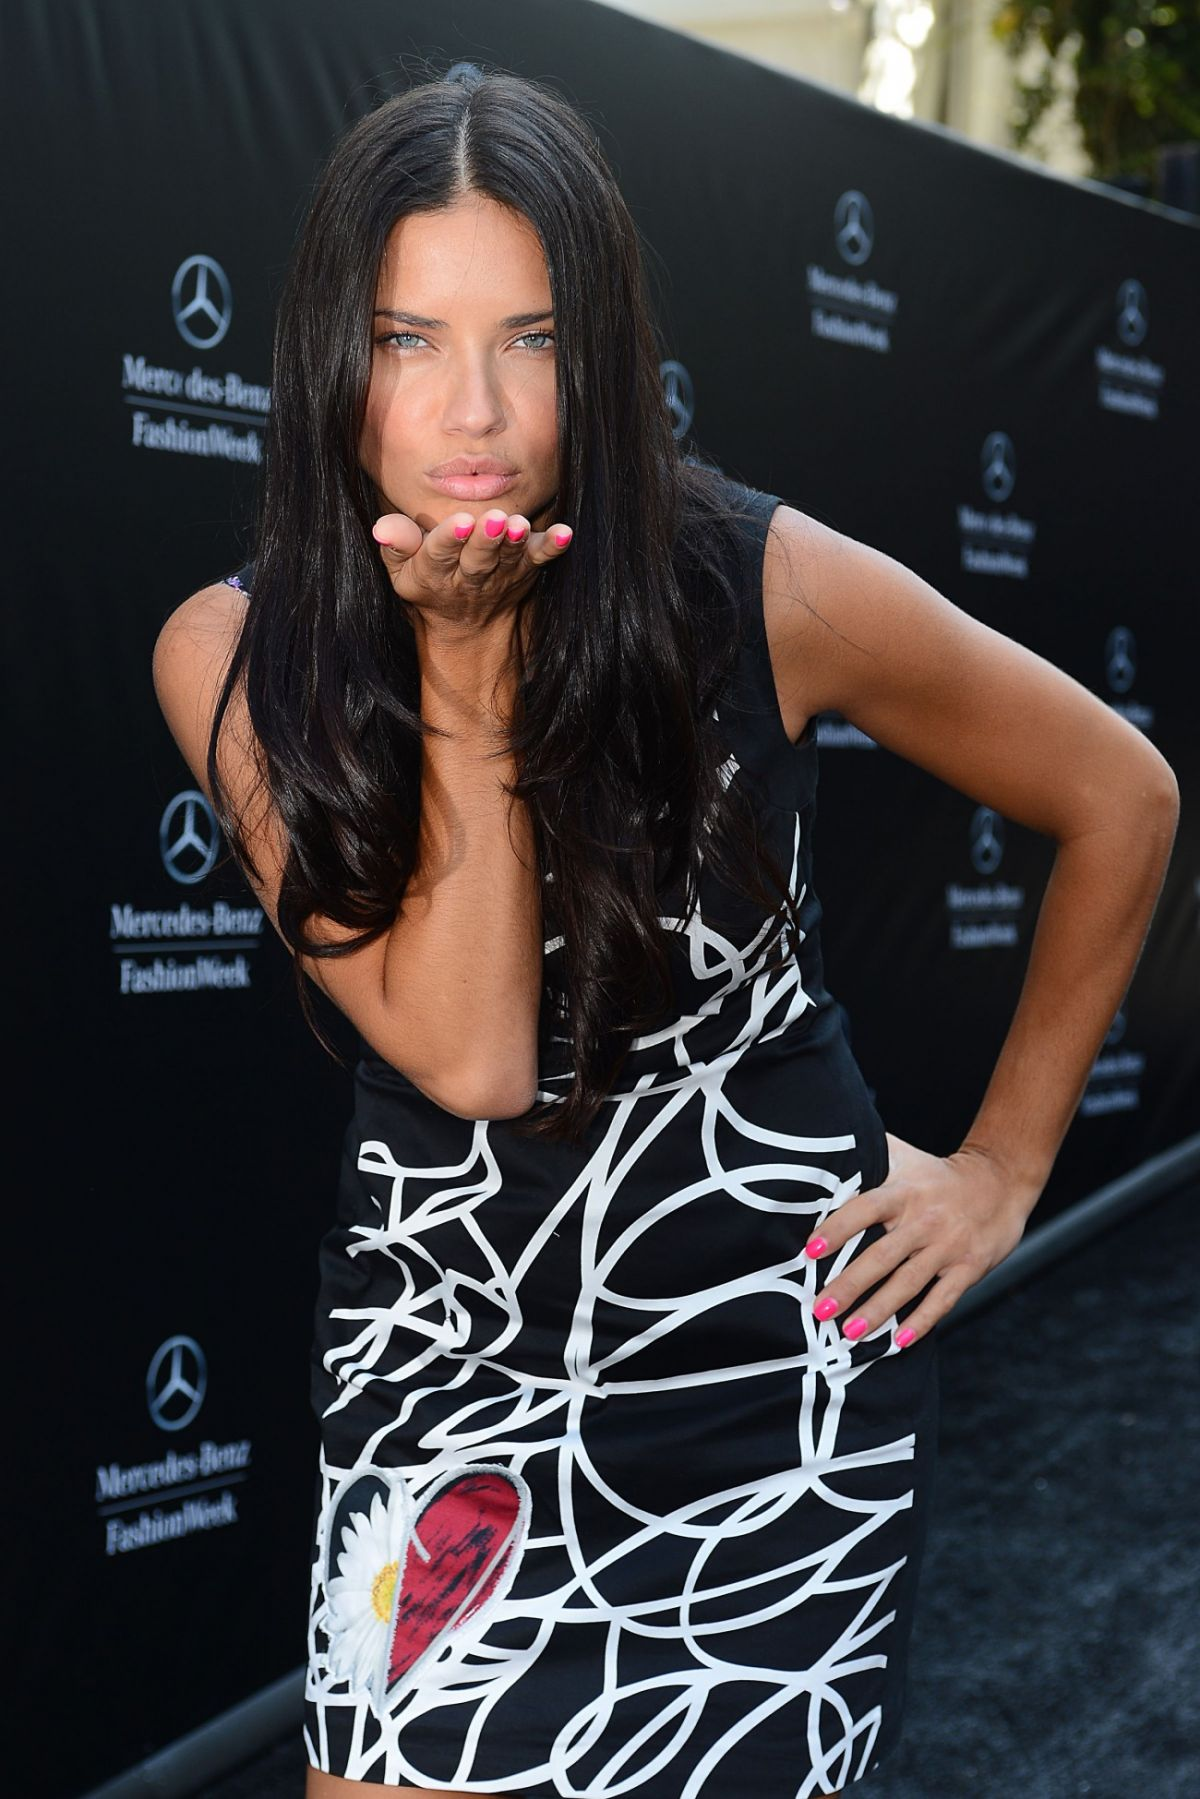 ADRIANA LIMA at Disegual Fashion Show in New York